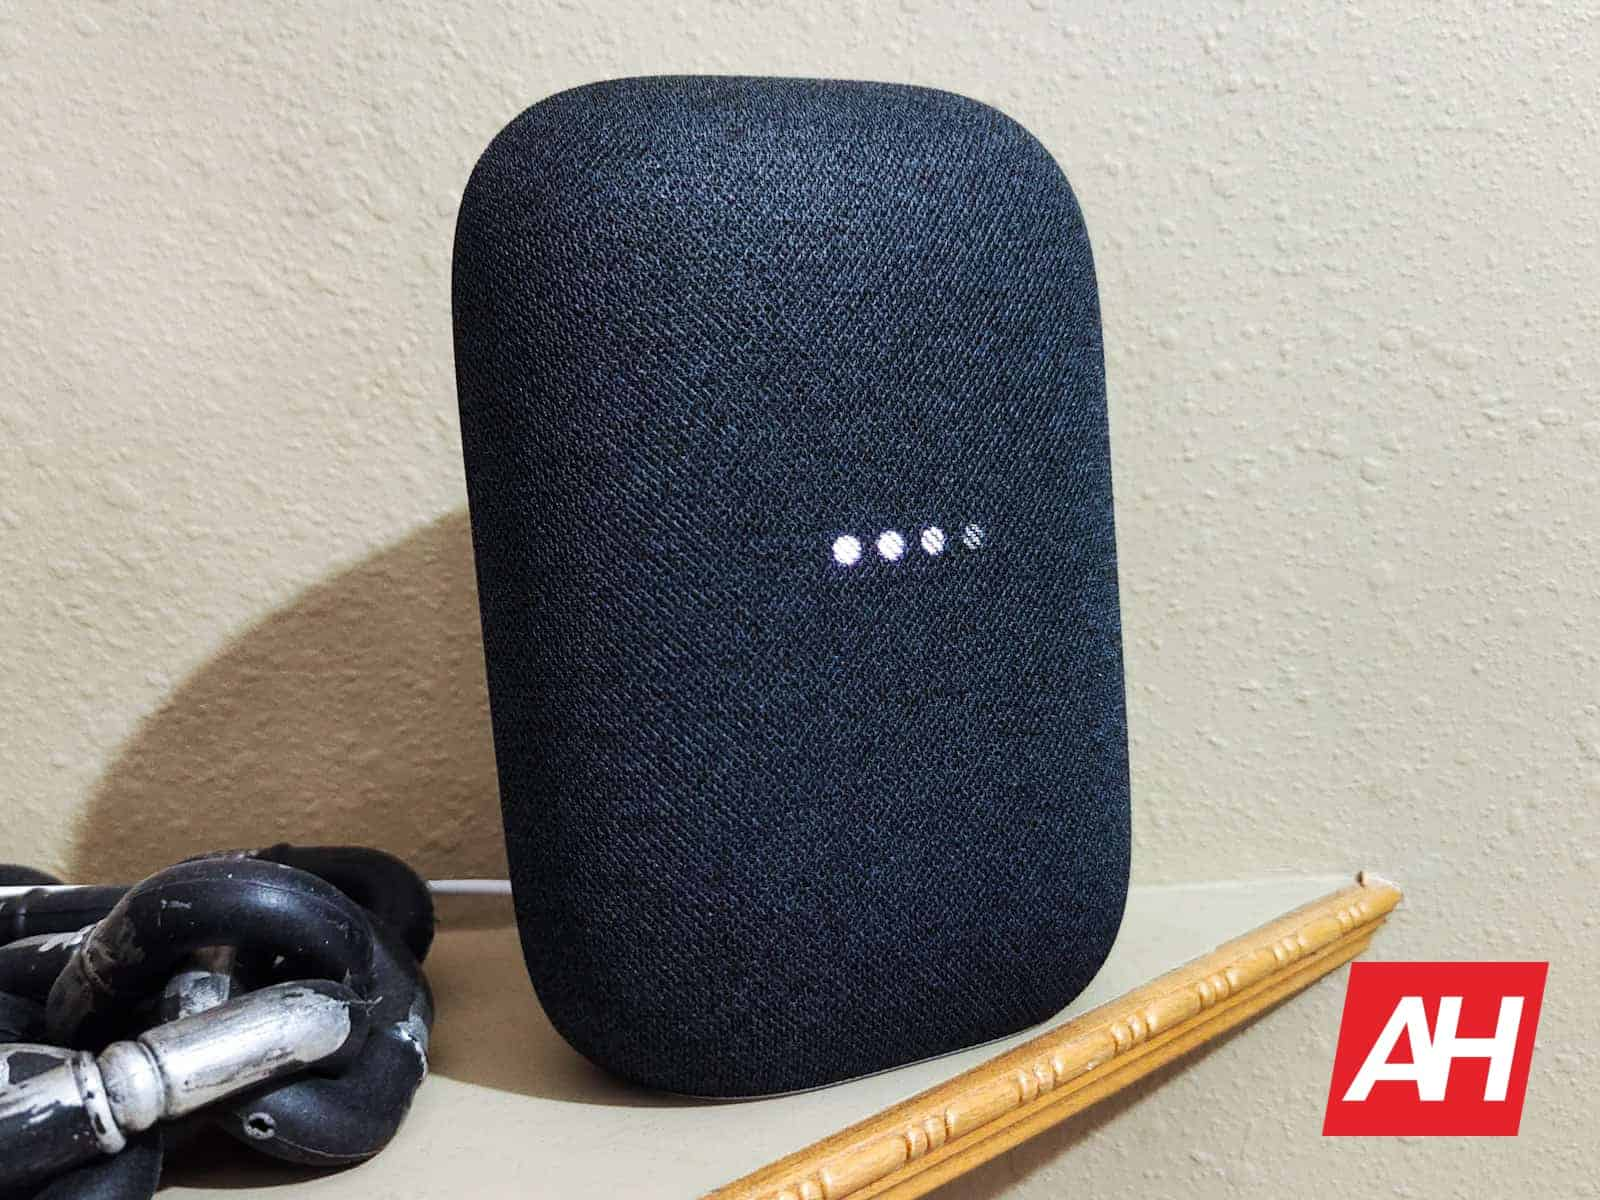 You can stop calls to your Google Home speakers when you are away